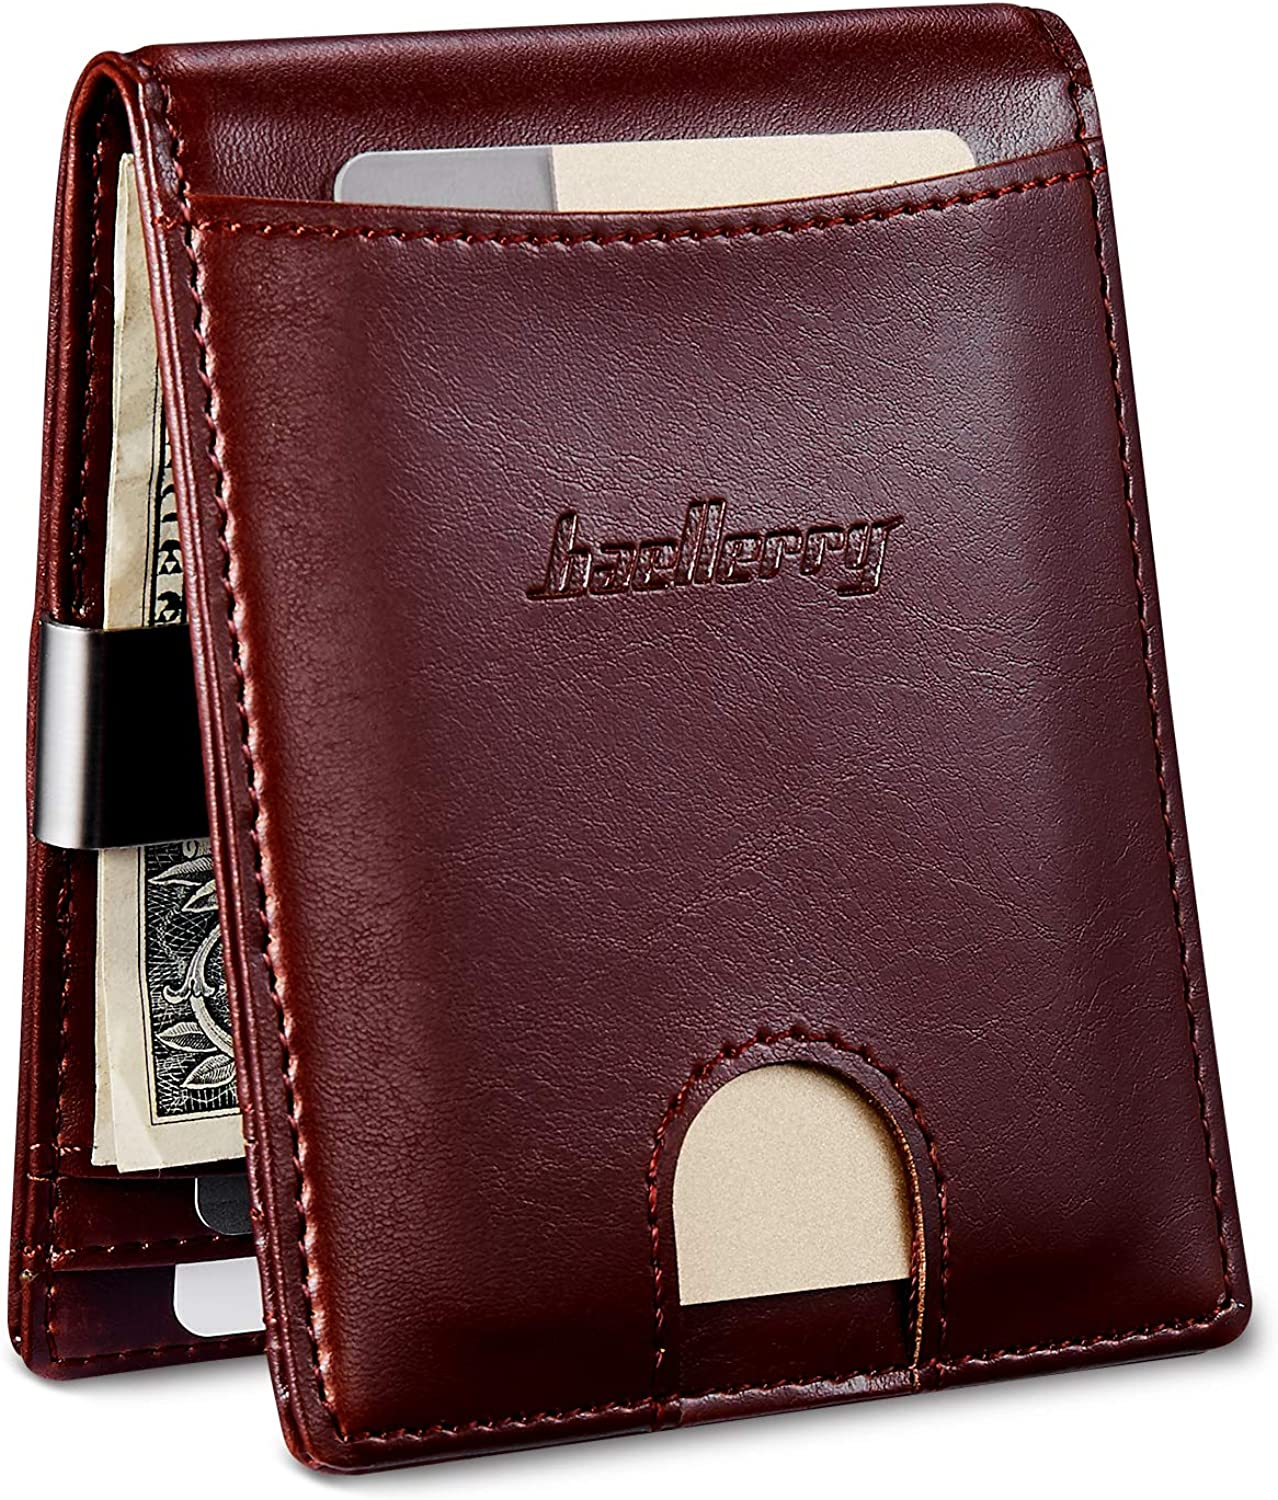 Men's Slim Bifold Money Clip Wallets Vegan Leather Minimalist Front Pocket Wallets For Men with Coin Pouch